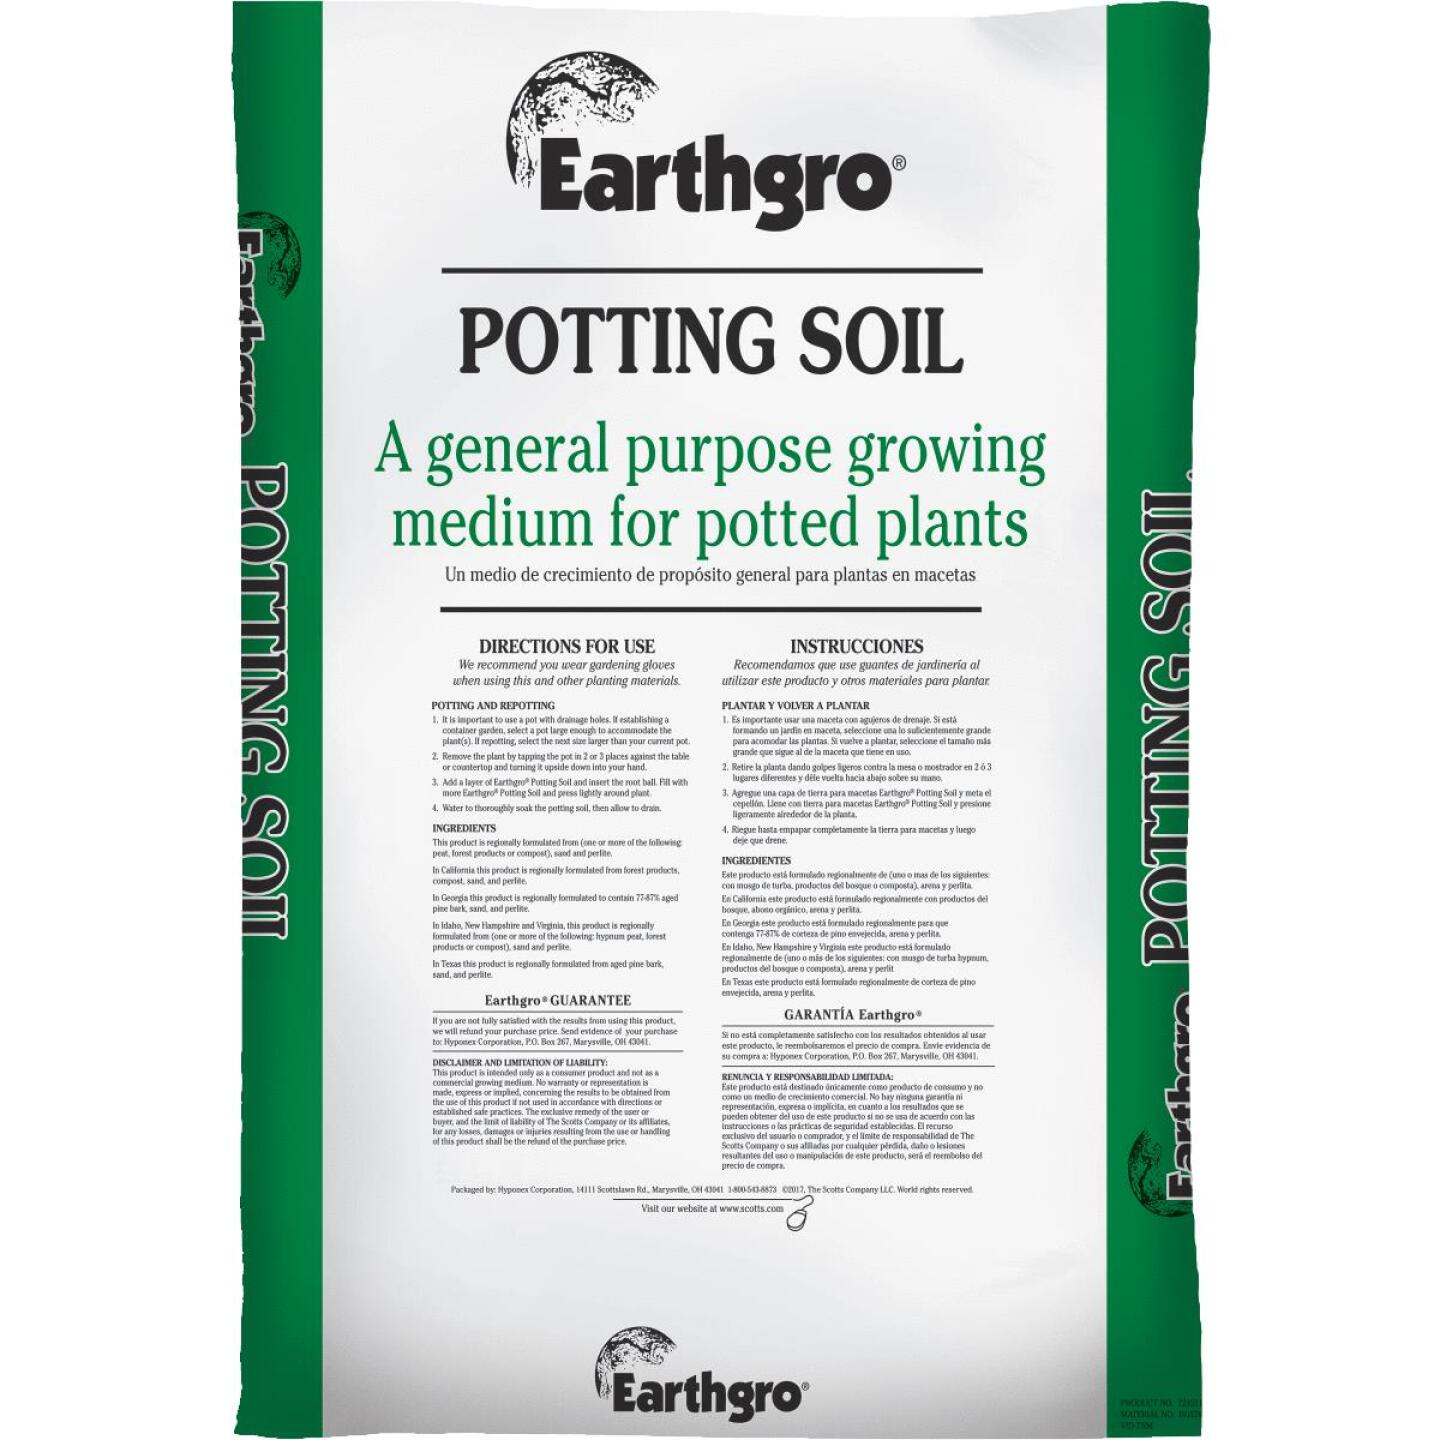 Earthgro 1 Cu. Ft. All Purpose Indoor & Outdoor Potting Soil Image 1